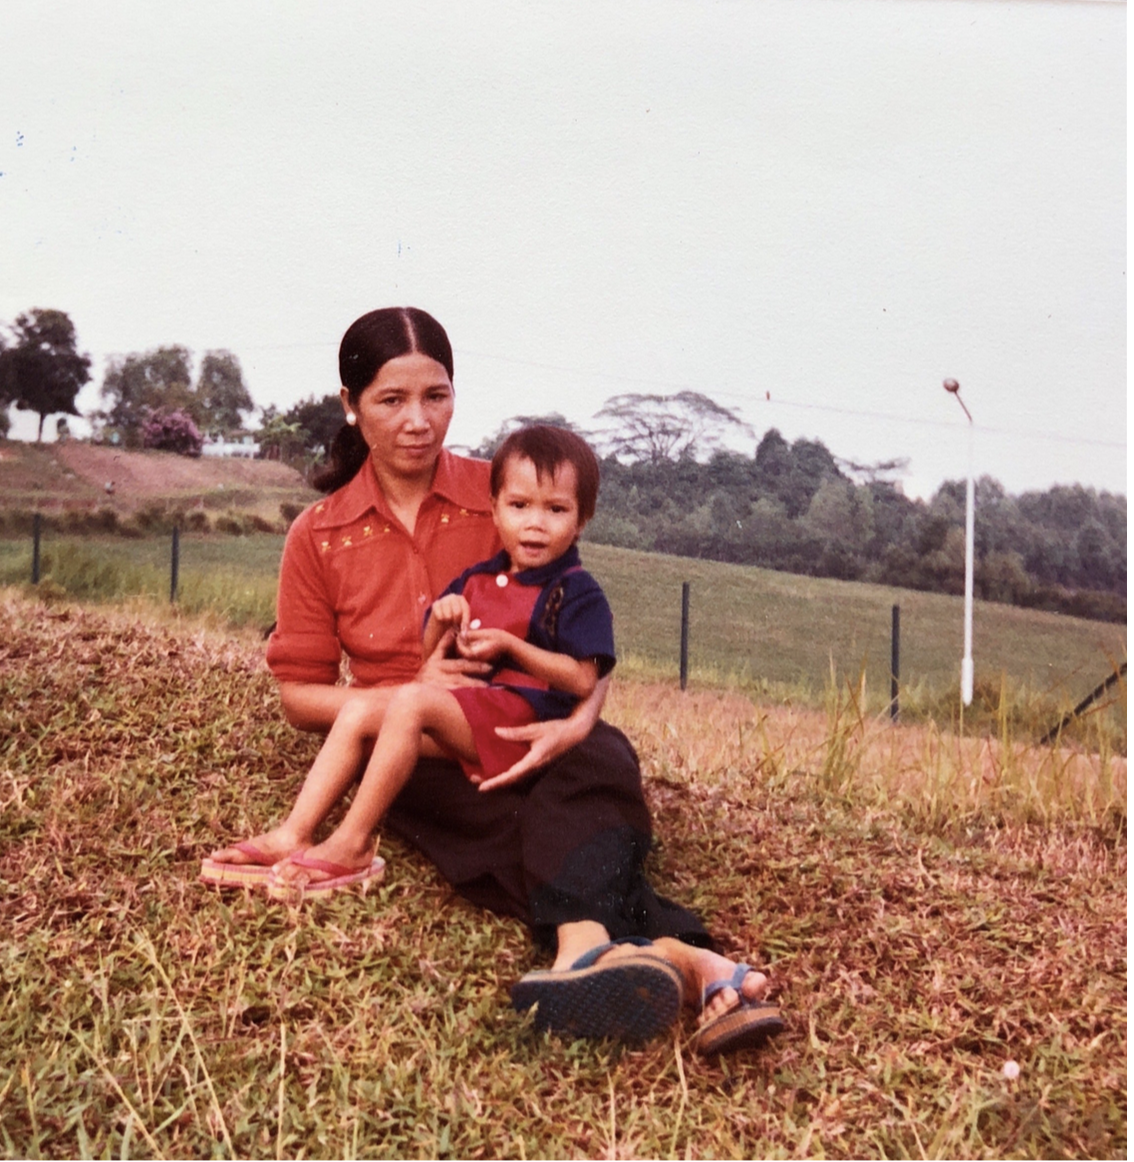 This is me and my mom at Singapore Refugee Camp in 1981. I was three years old.